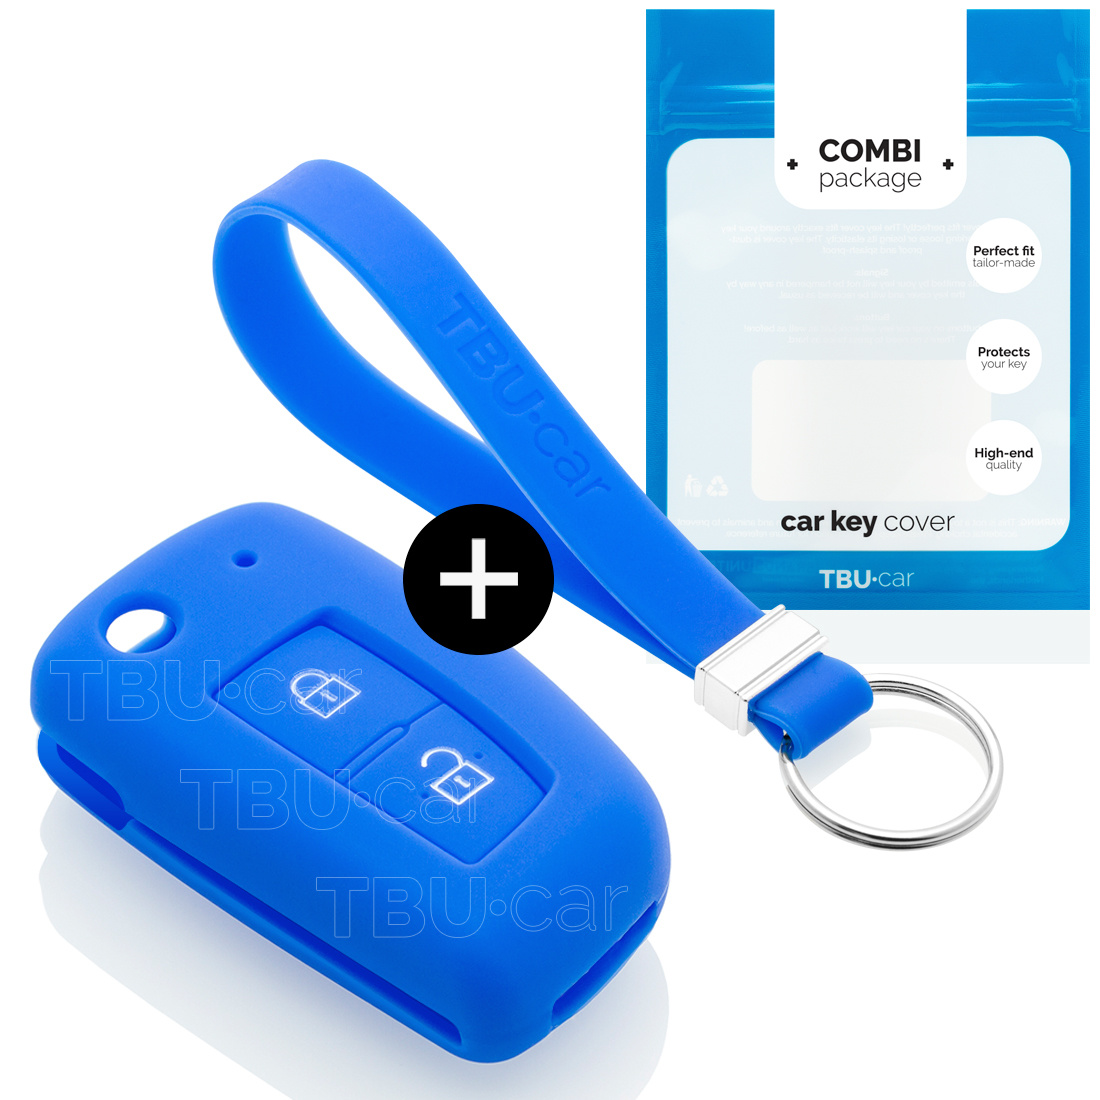 Nissan Car key cover - Silicone Protective Remote Key Shell - FOB Case Cover - Blue